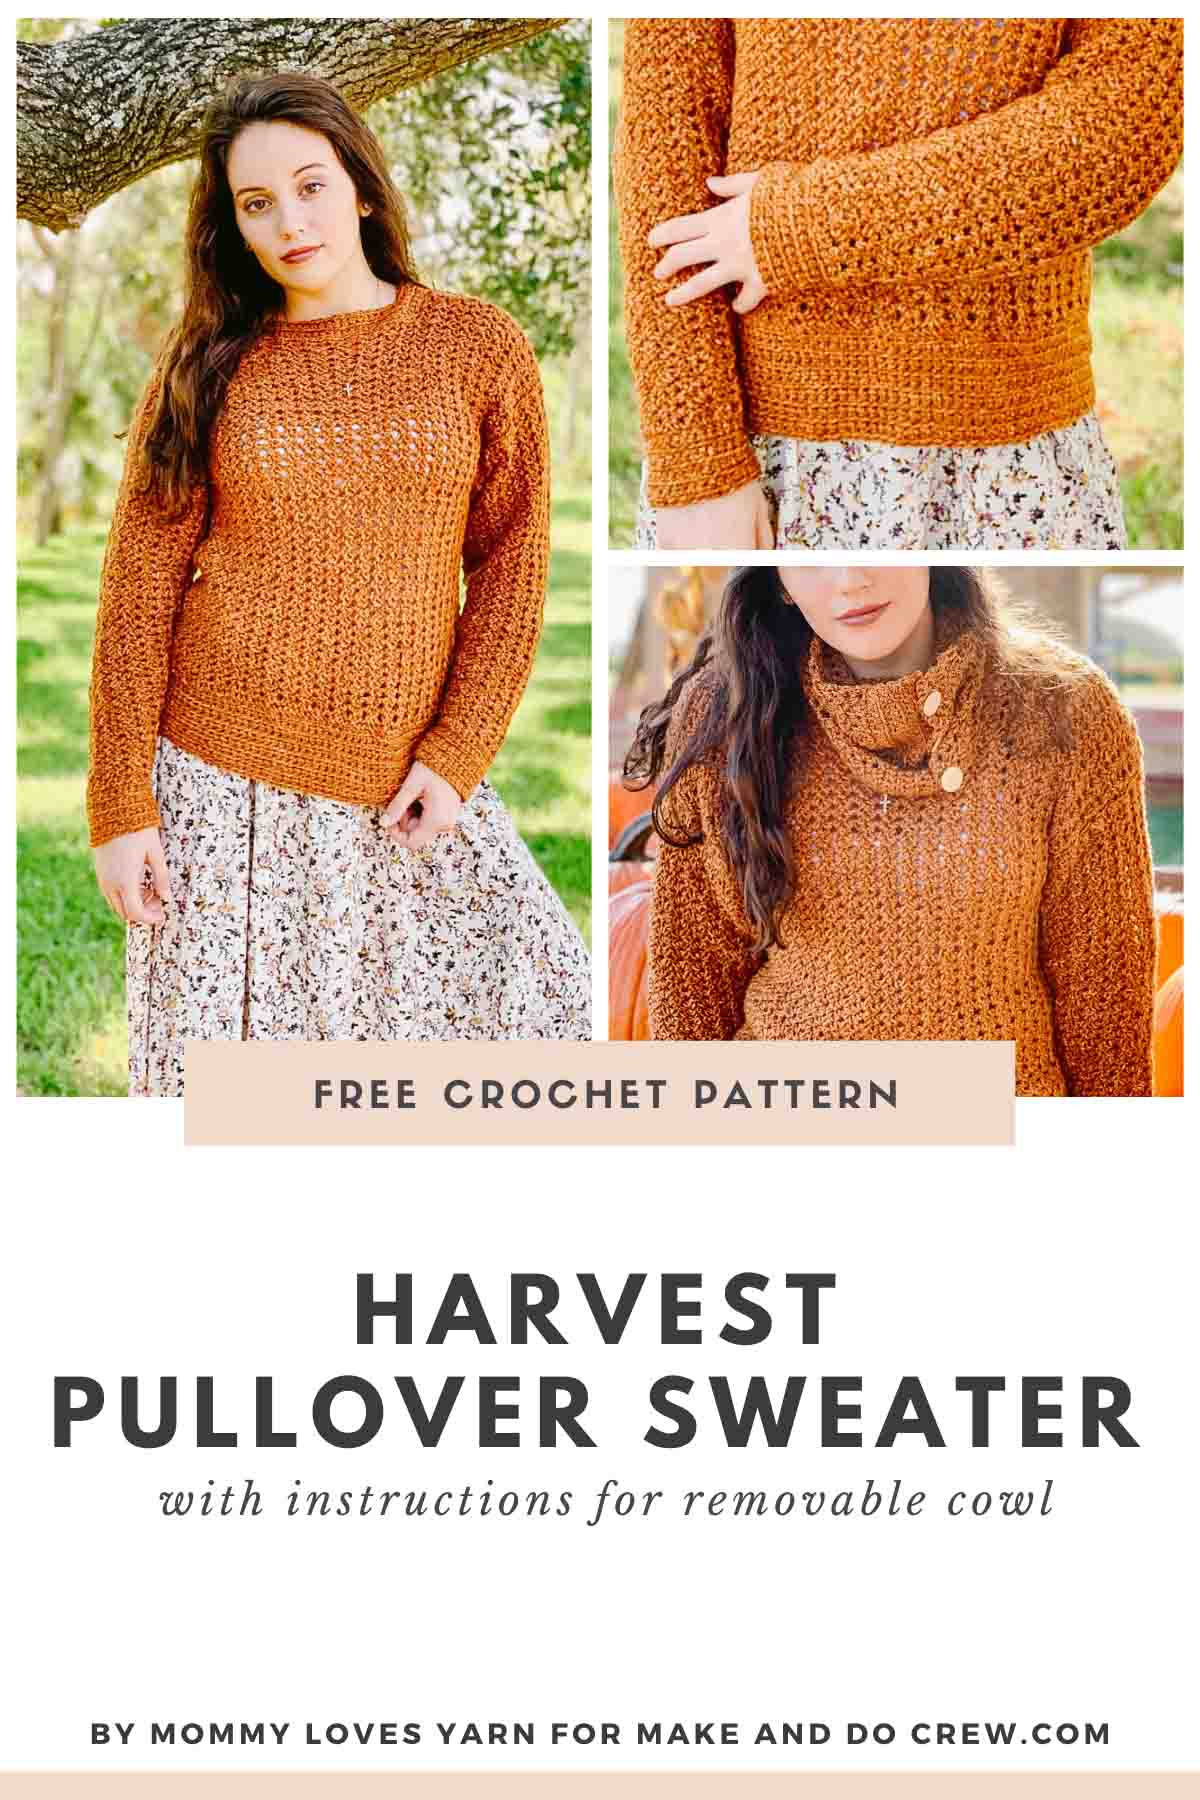 Made this simple crochet pullover sweater pattern with removable cowl to create two different looks with one easy garment! Free pattern made with Lion Brand Jeans yarn.